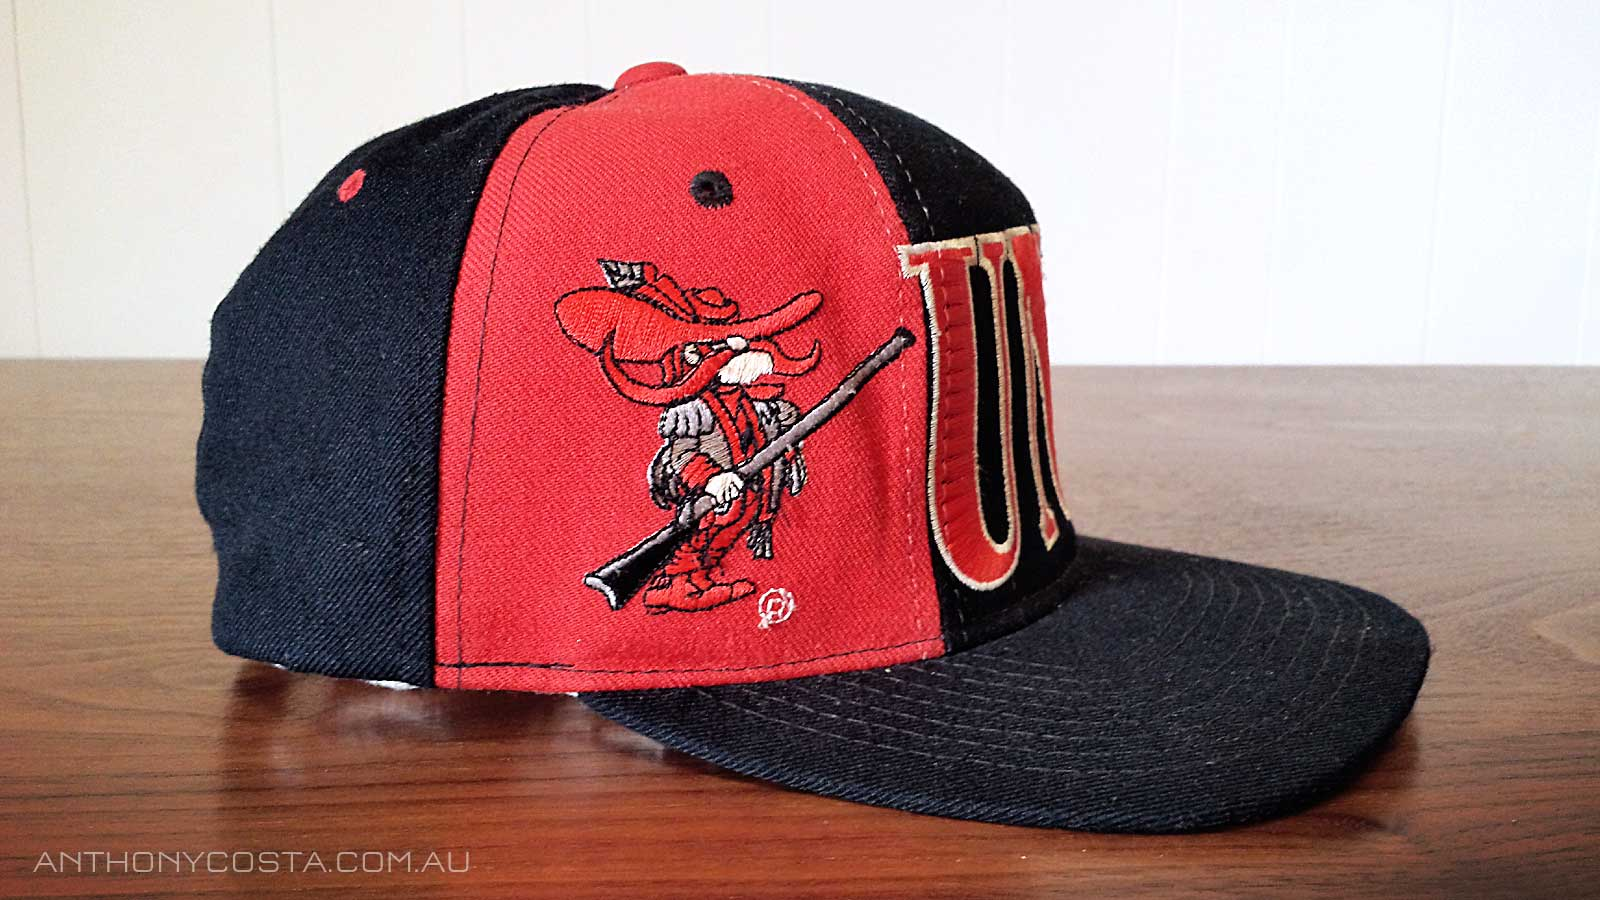 UNLV Runnin Rebels Starter hat